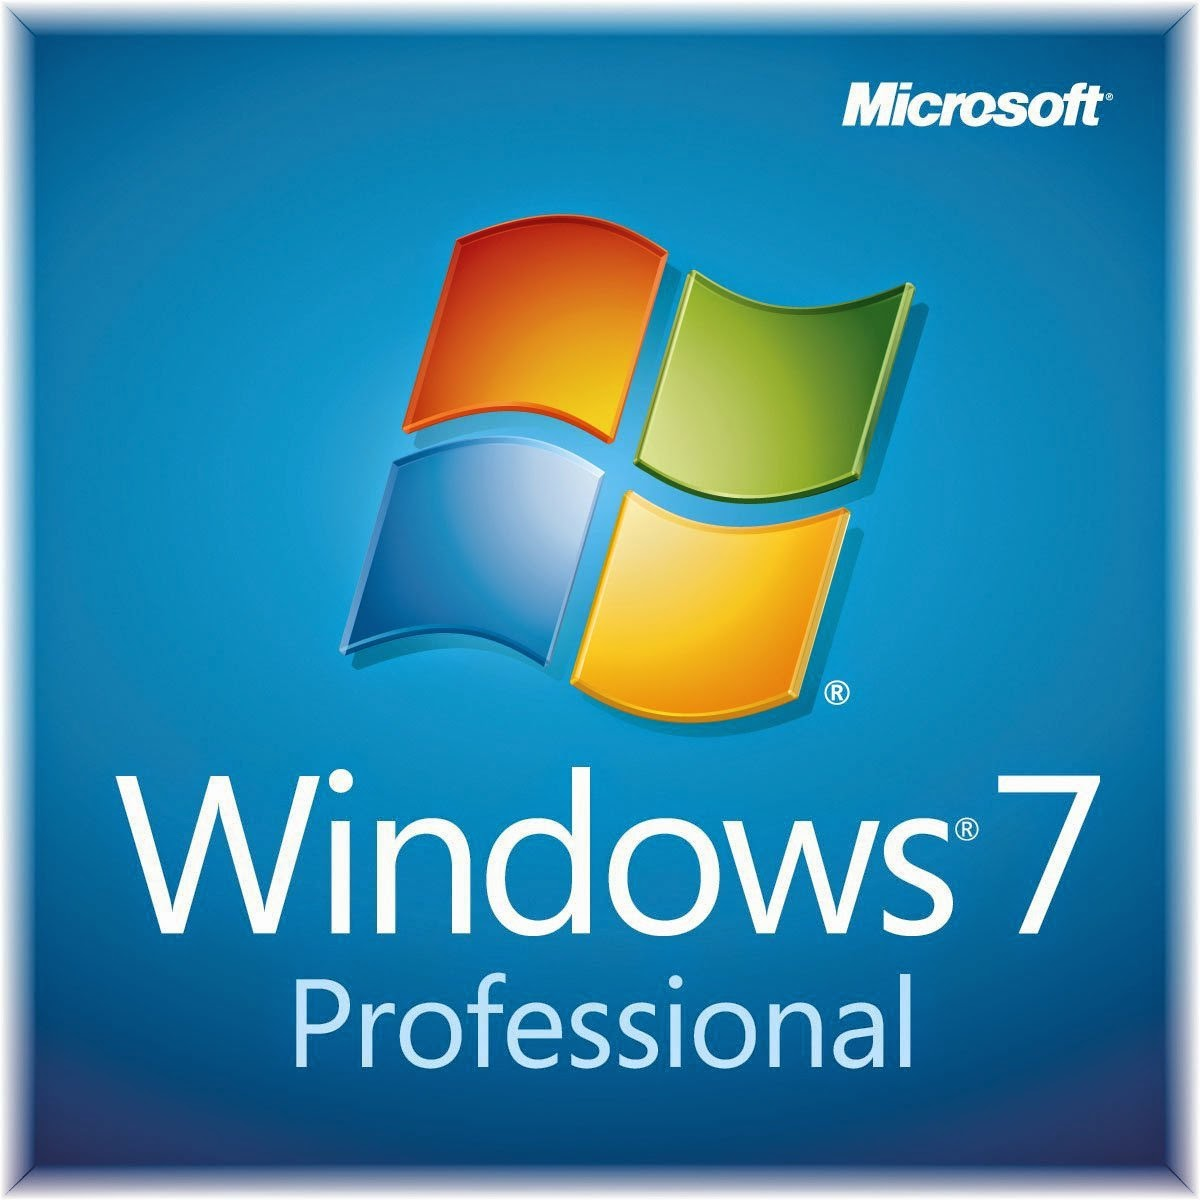 Microsoft-Windows 7-Professional-Edition-download